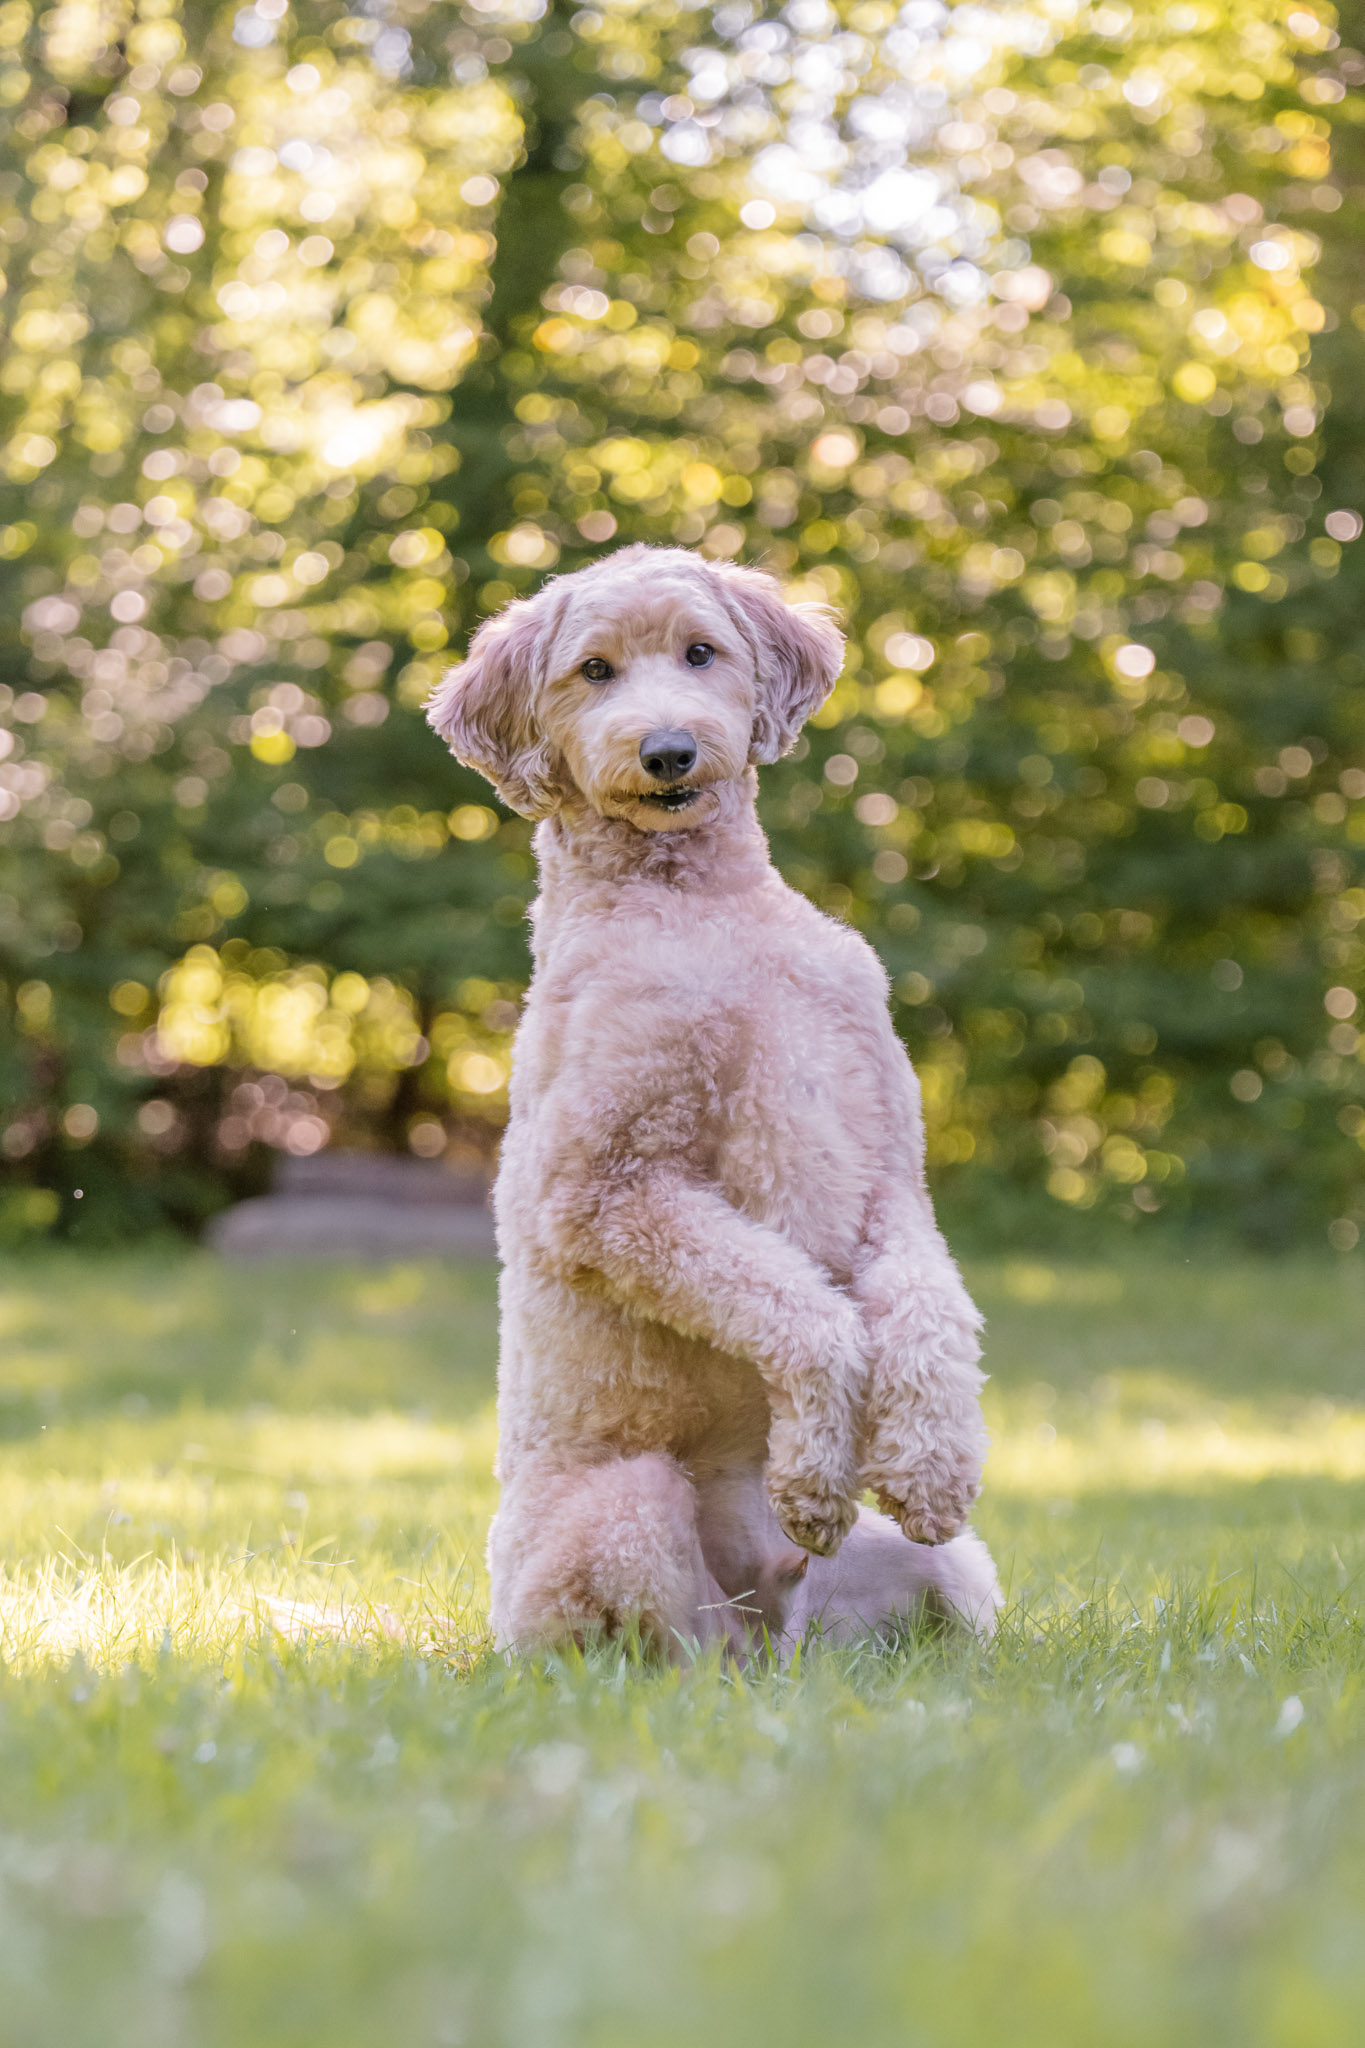 Preparation for your reactive dog's professional photos is key to setting them up for success according to Atlanta pet photographer.